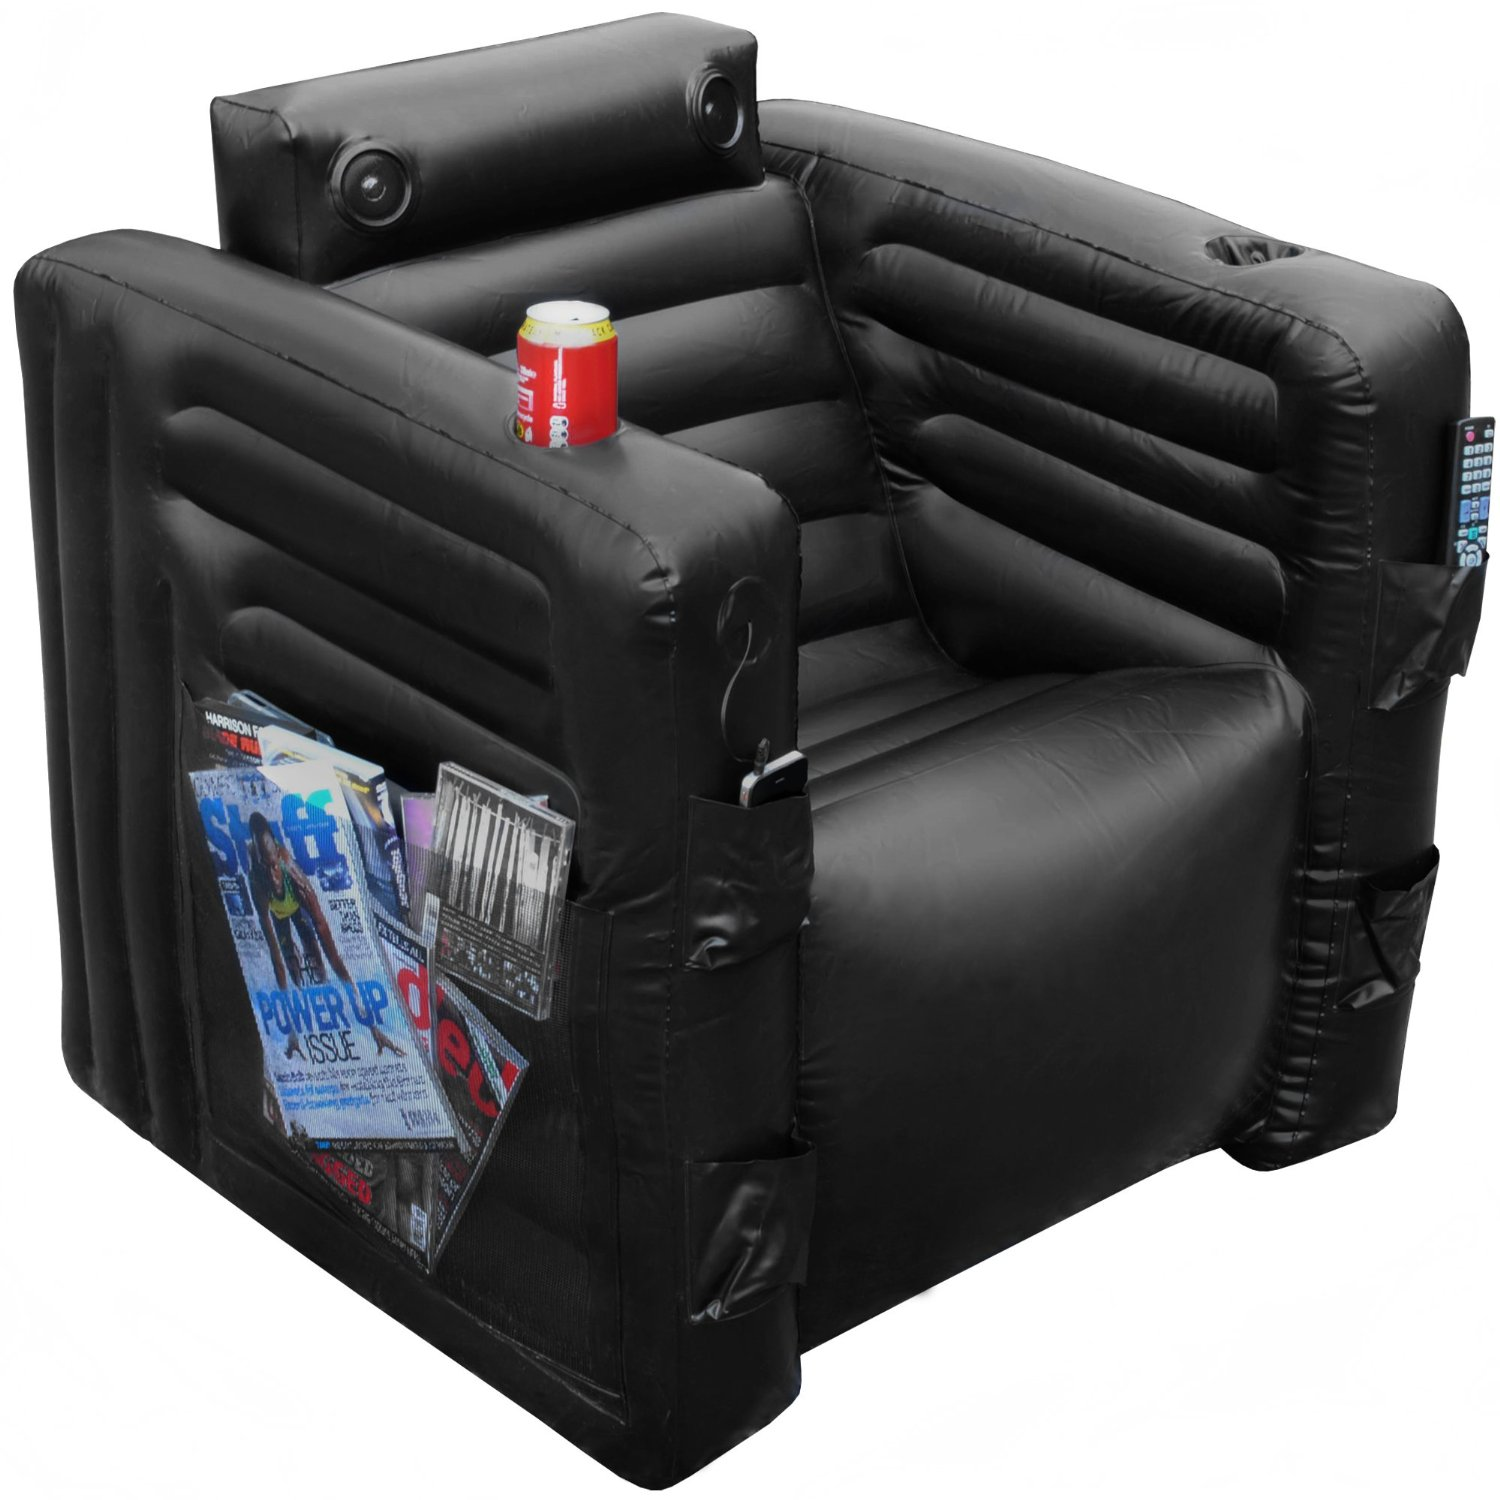 Gamer Sessel Ps4 Inflatable Gaming Chair Reviews 2016 Archives Which